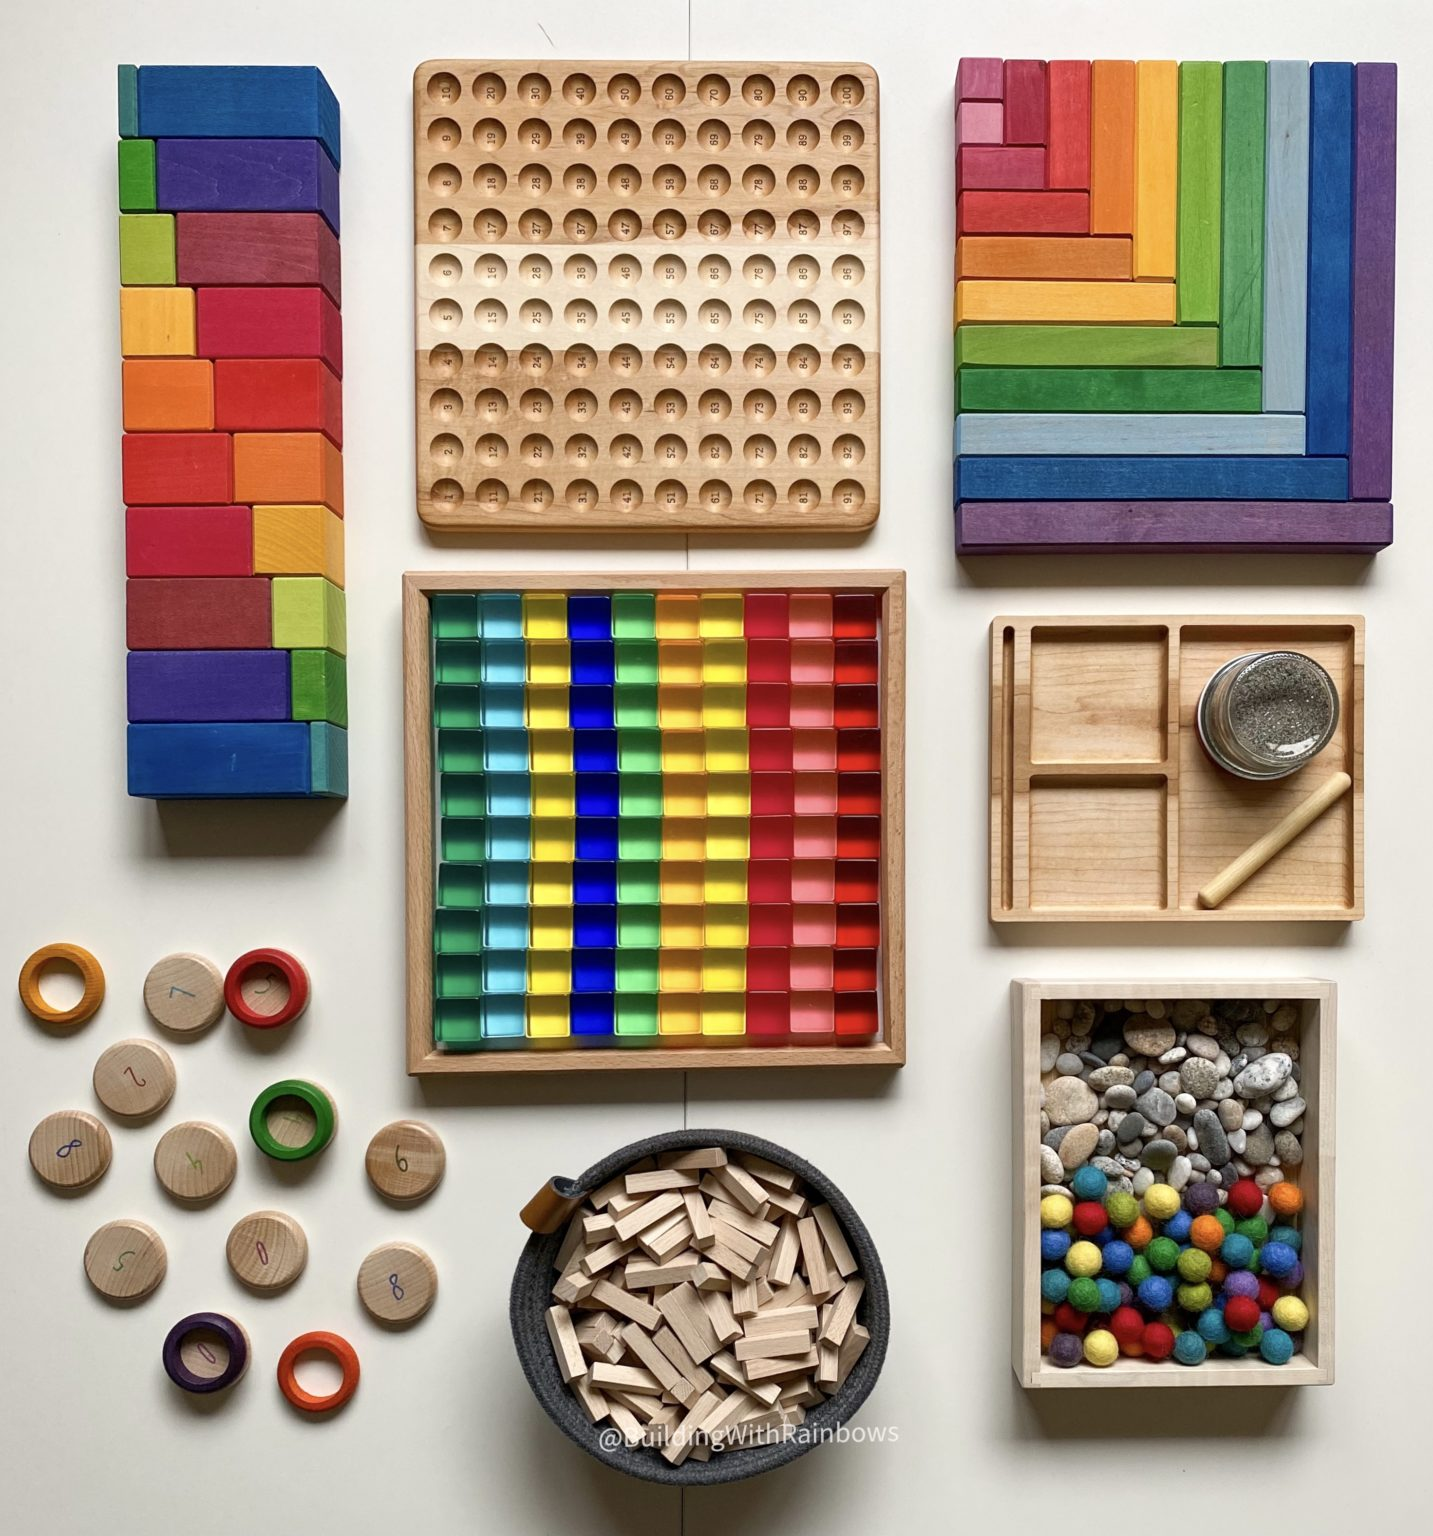 openended toys for math tools